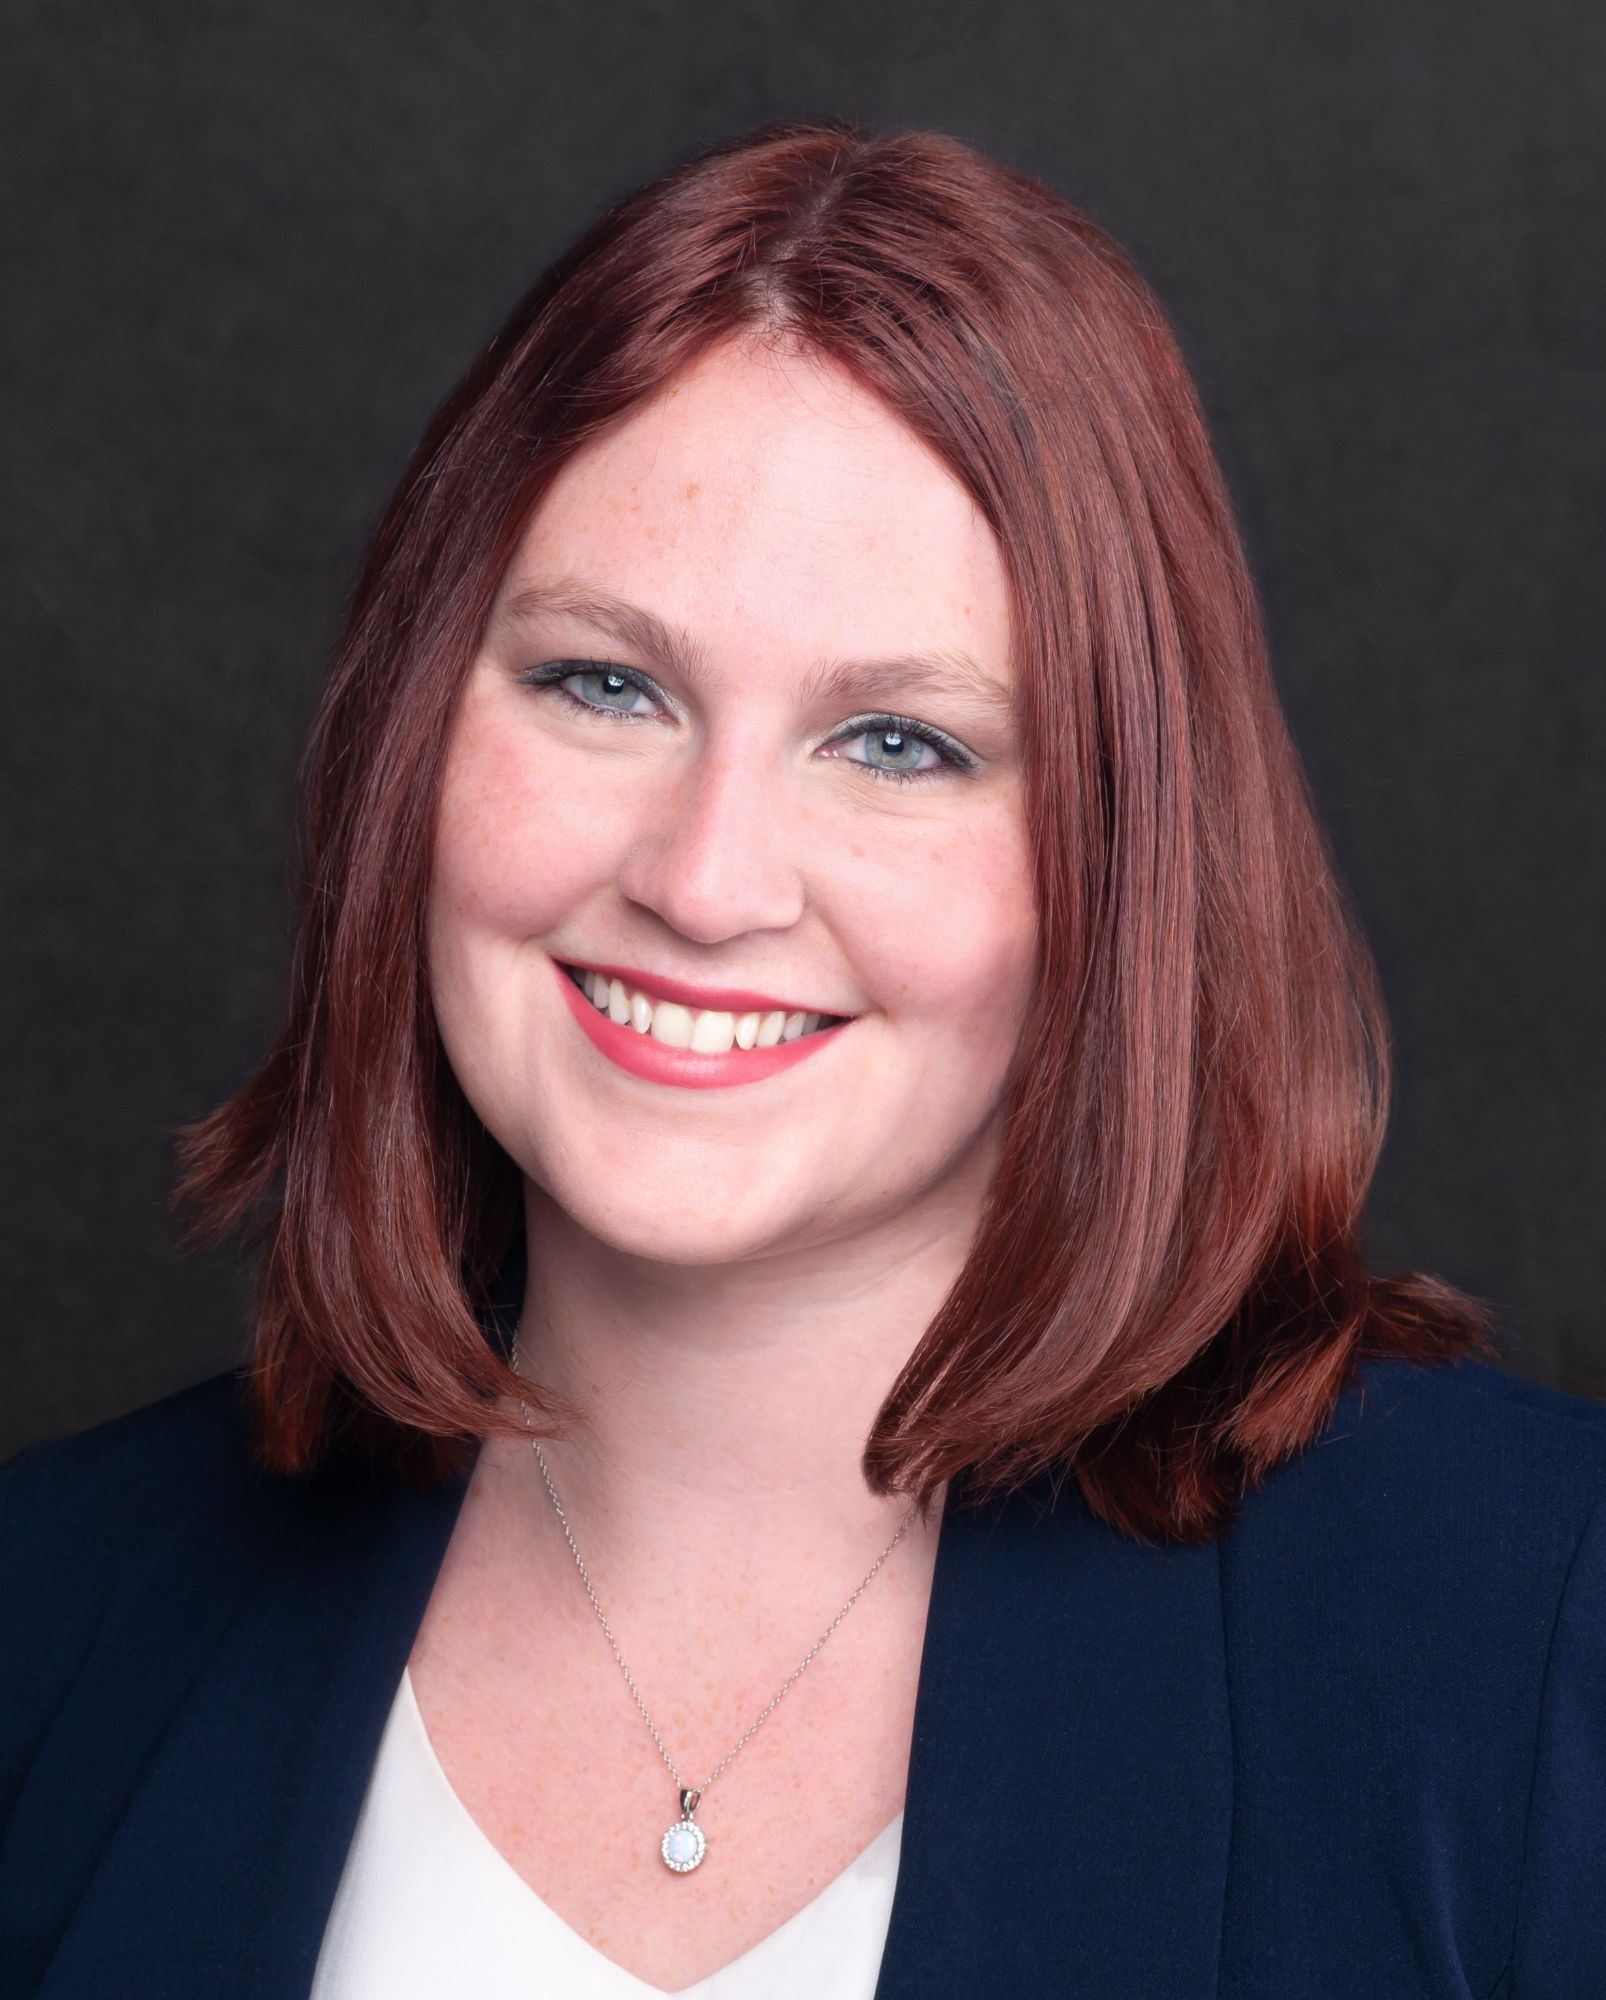 Photo of KERRI FITCH - Licensed Funeral Director and Embalmer